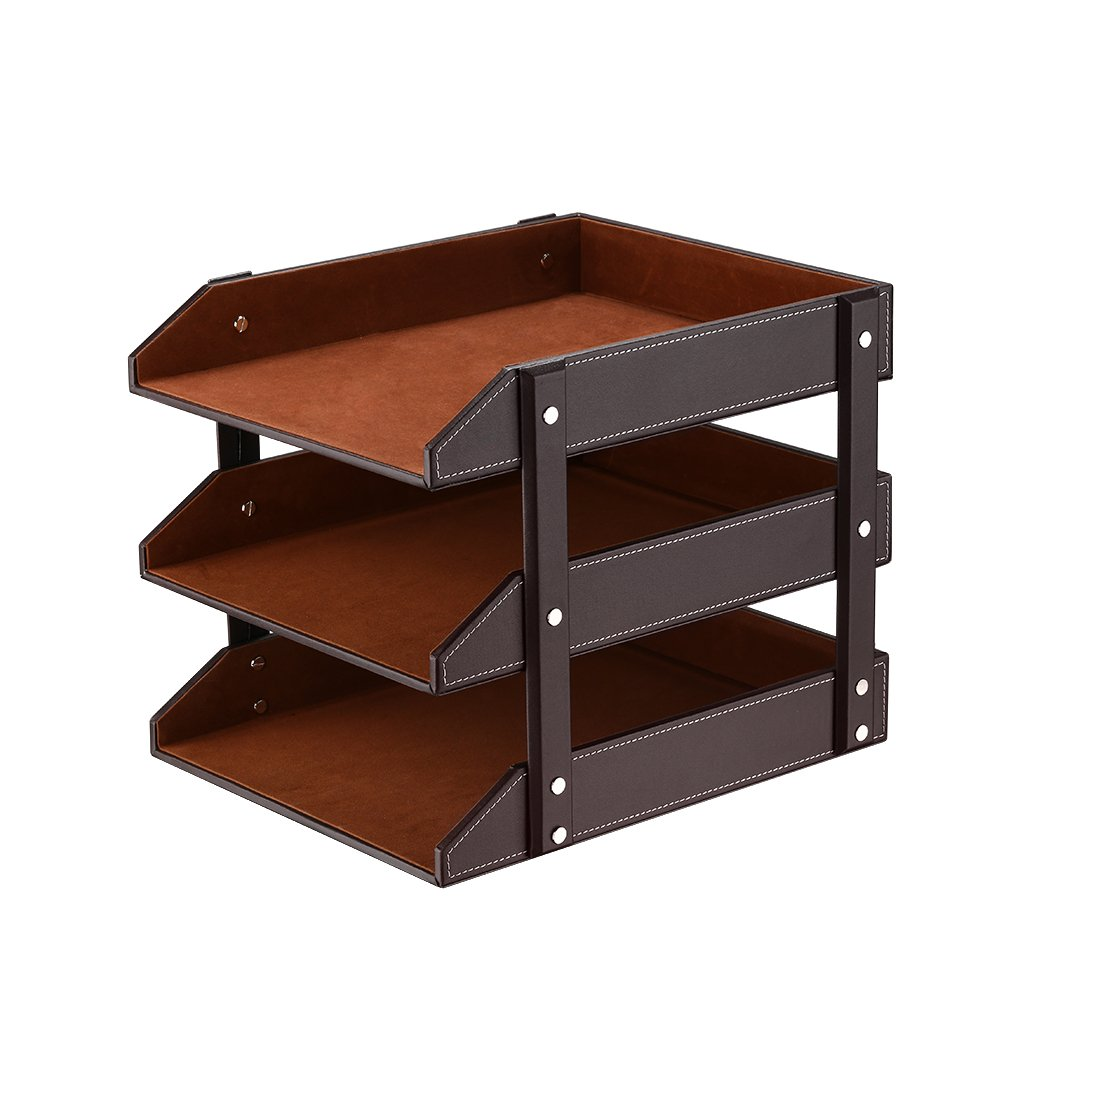 Leather Desk Organizer, Thipoten 3-Tier Stackable Letter Tray Holder for Office Supplies, Paper, File, Magazine, Perfect Office Organization for Desktop (Brown-3Tiers) by Thipoten